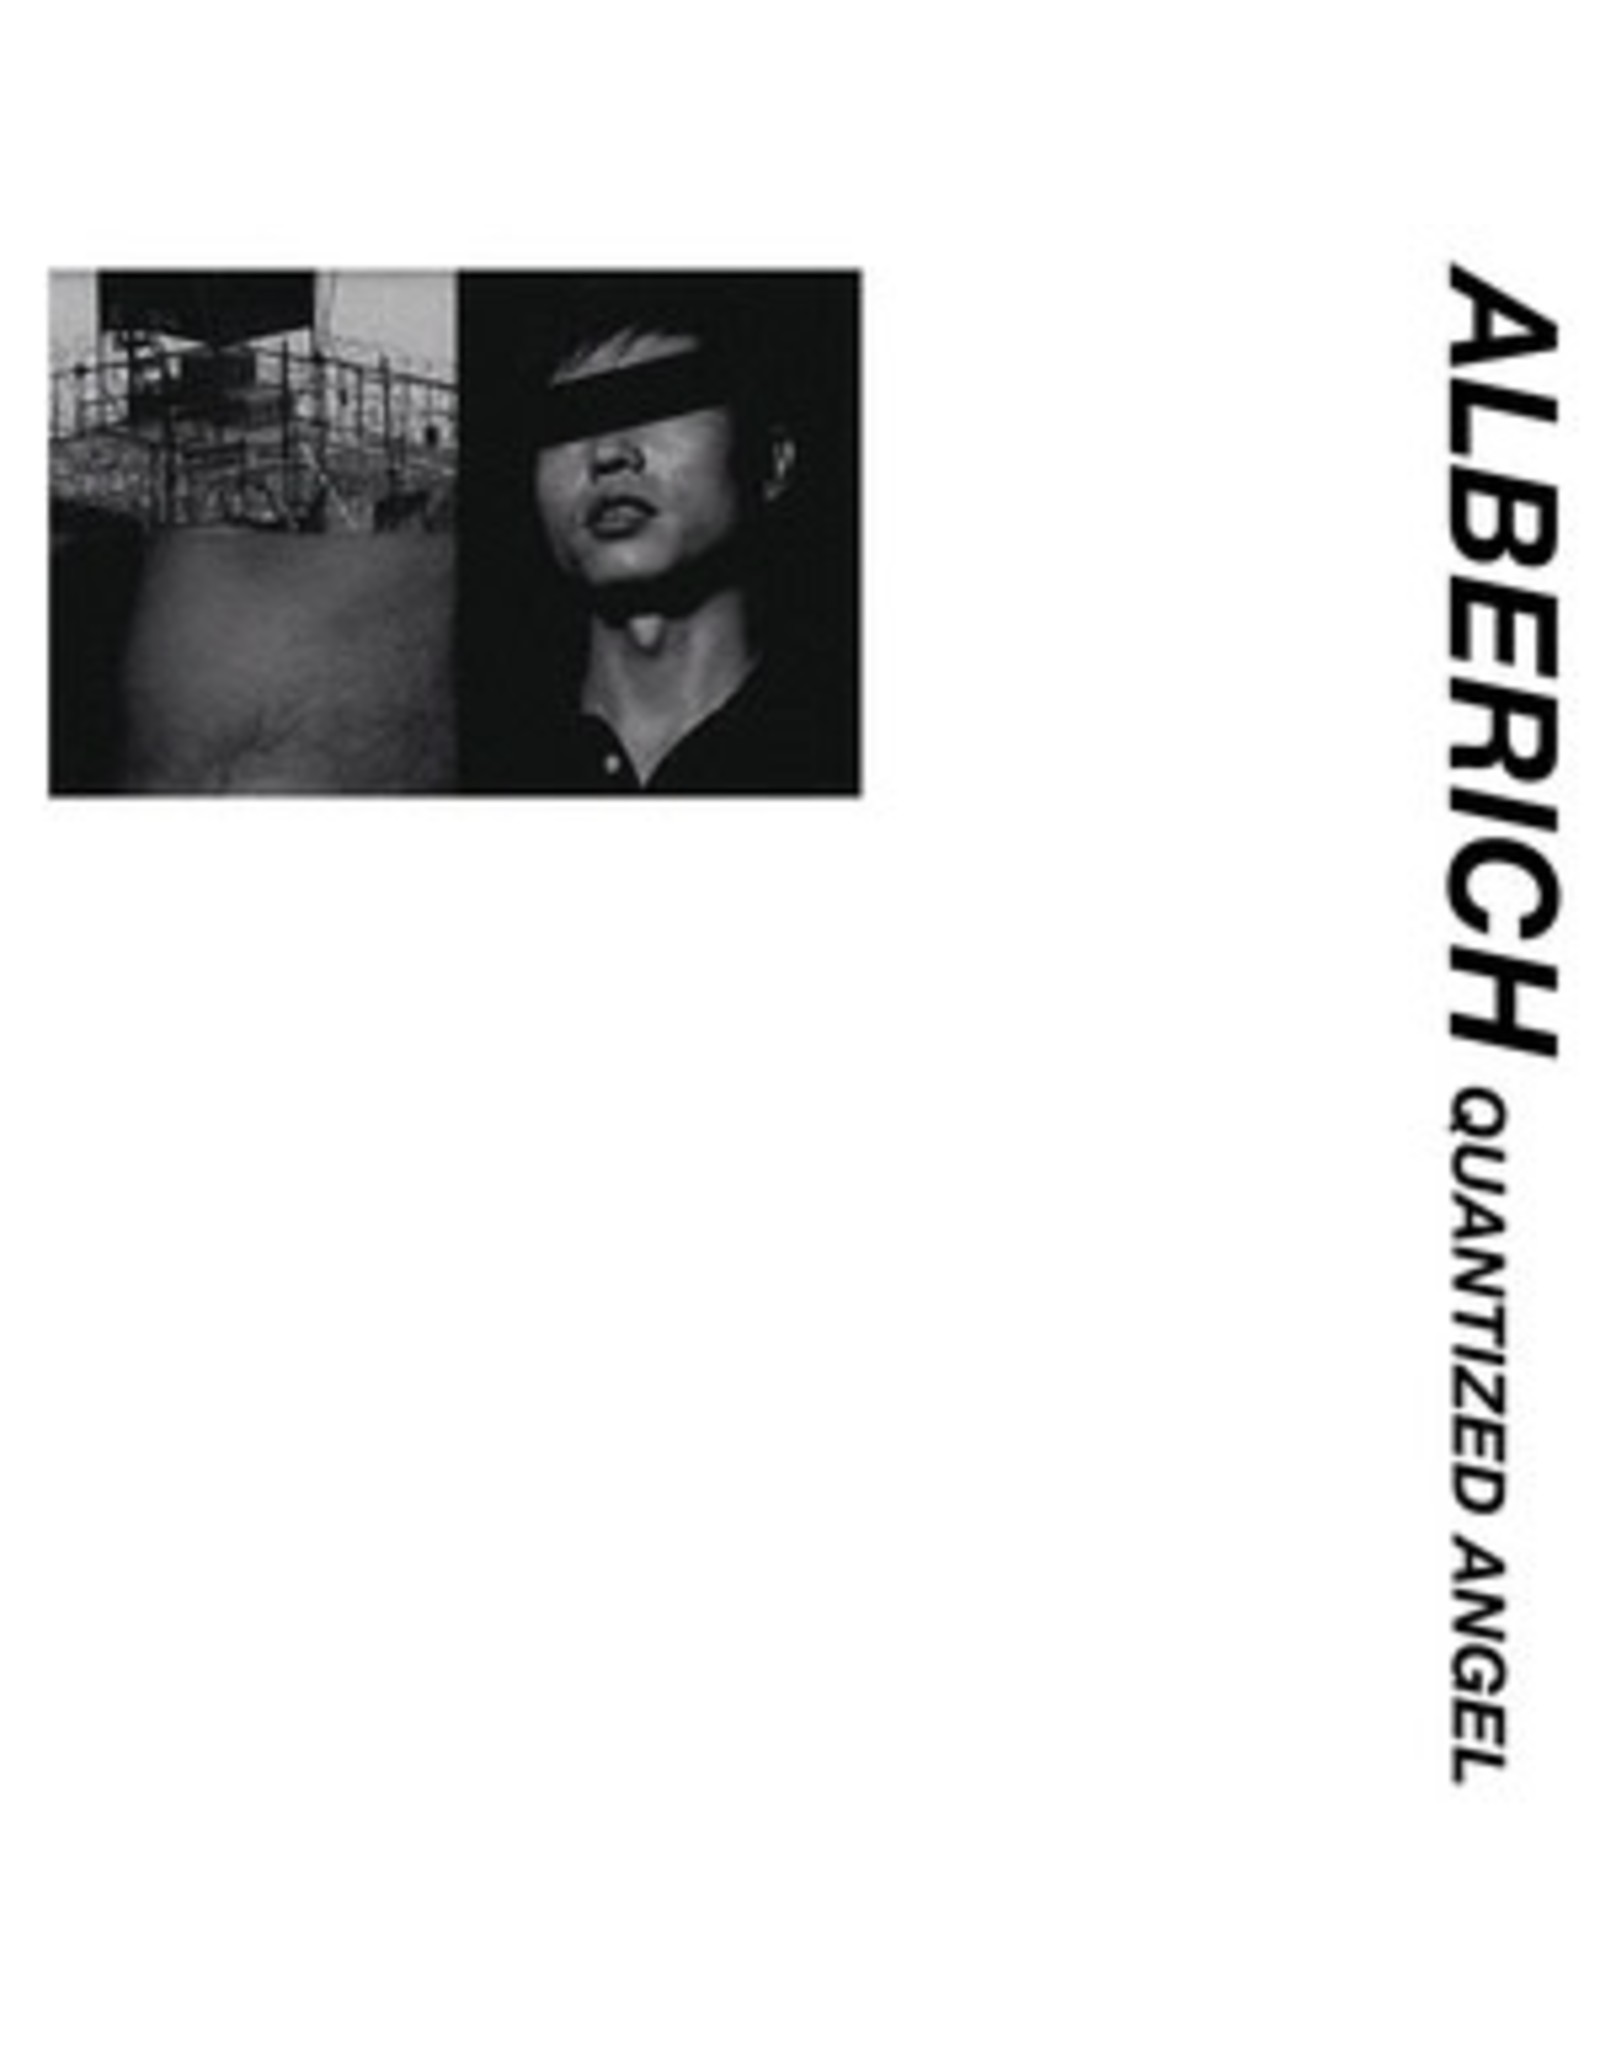 Hospital Alberich: Quantized Angel LP